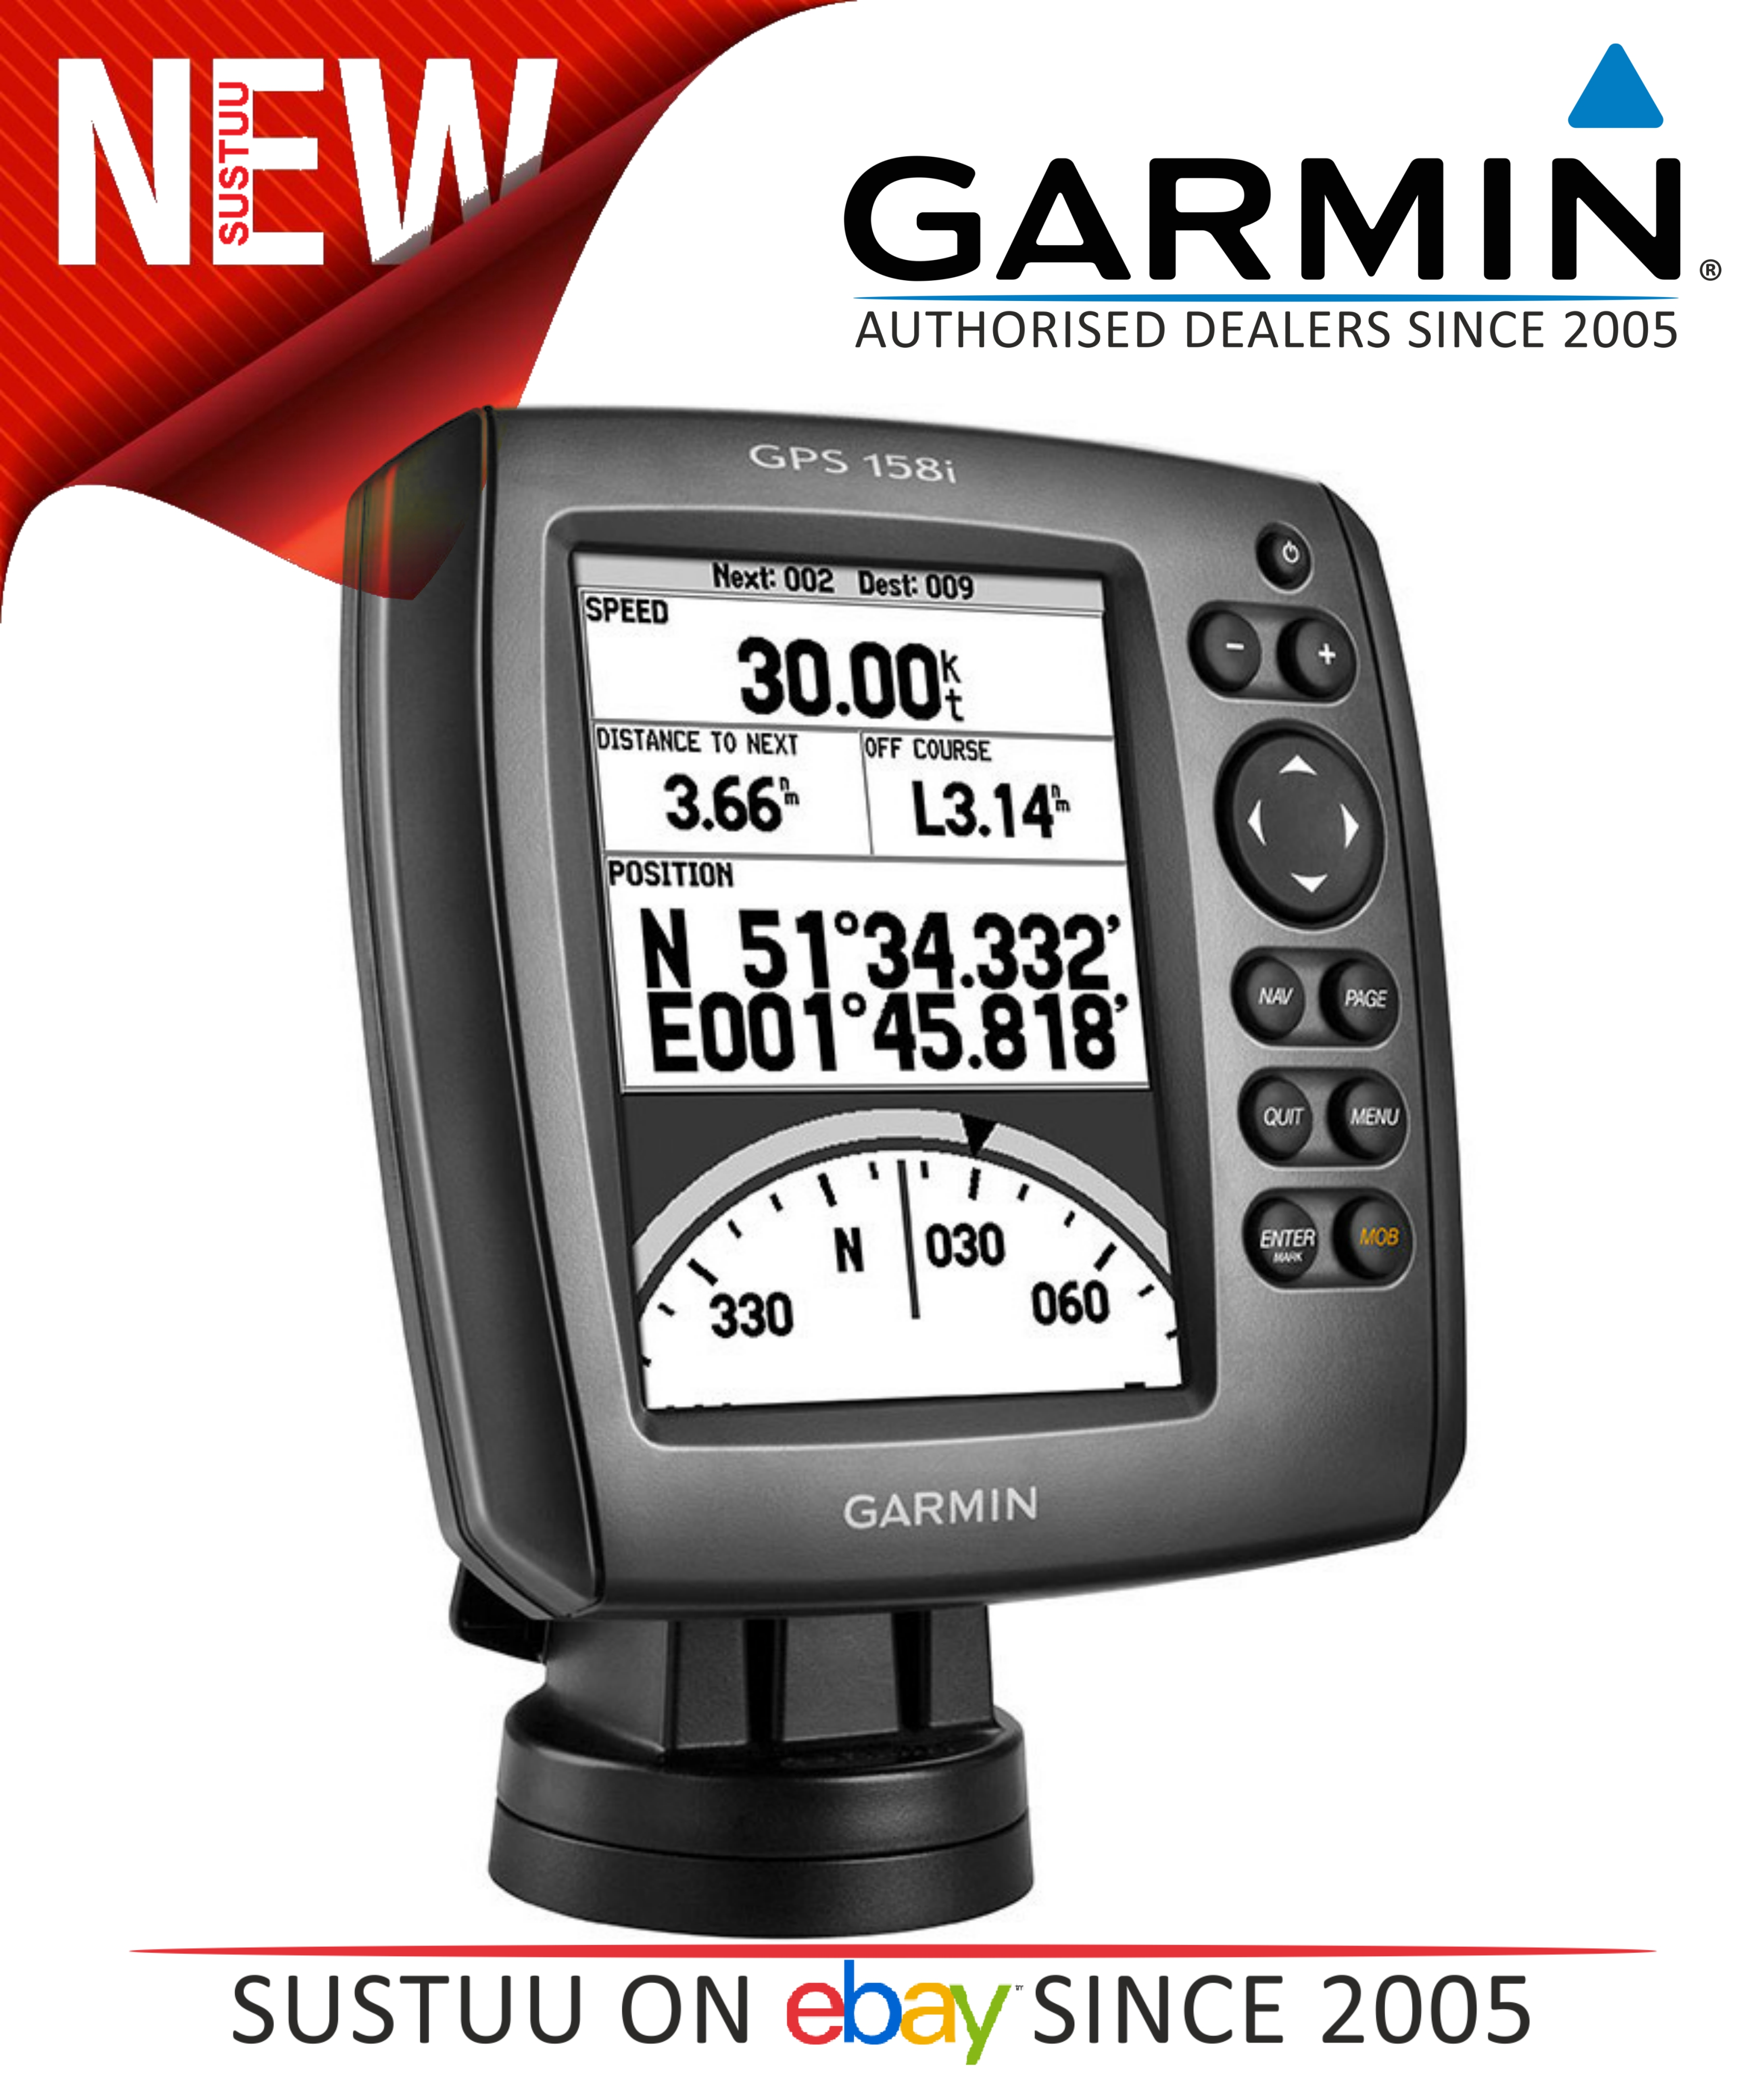 new garmin gps receiver158i with built in gps antenna plus